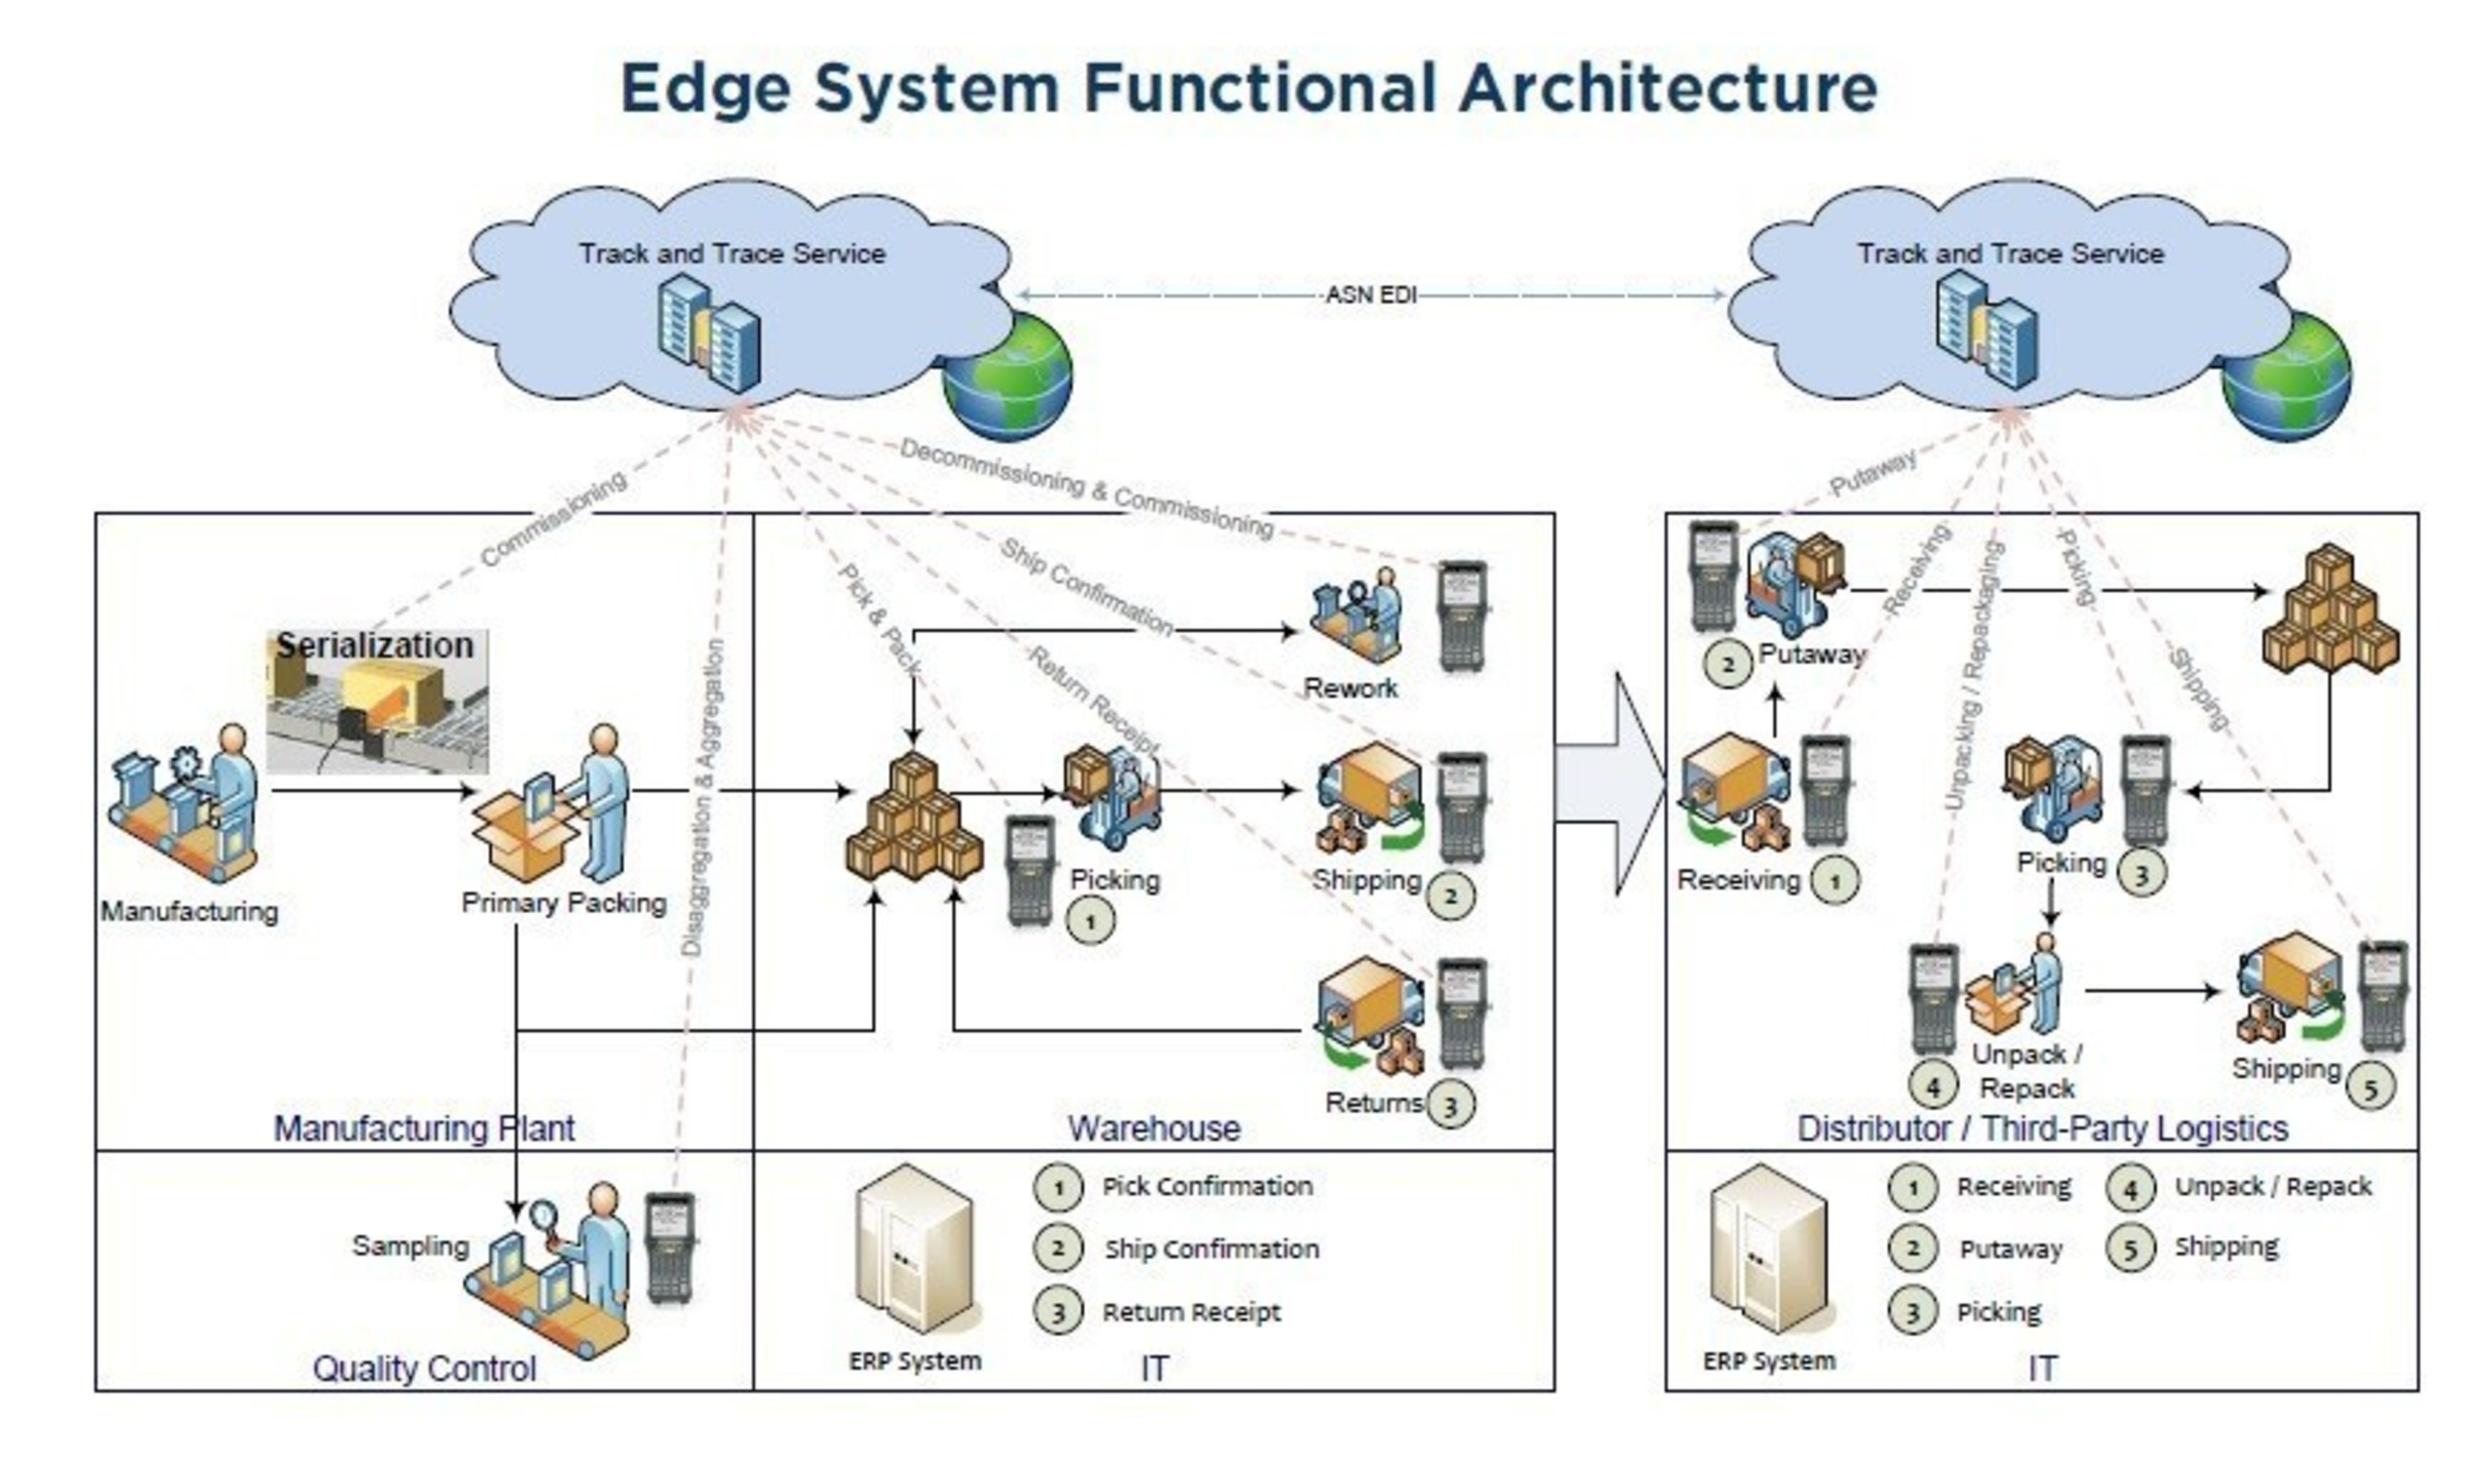 Edge System Functional Architecture